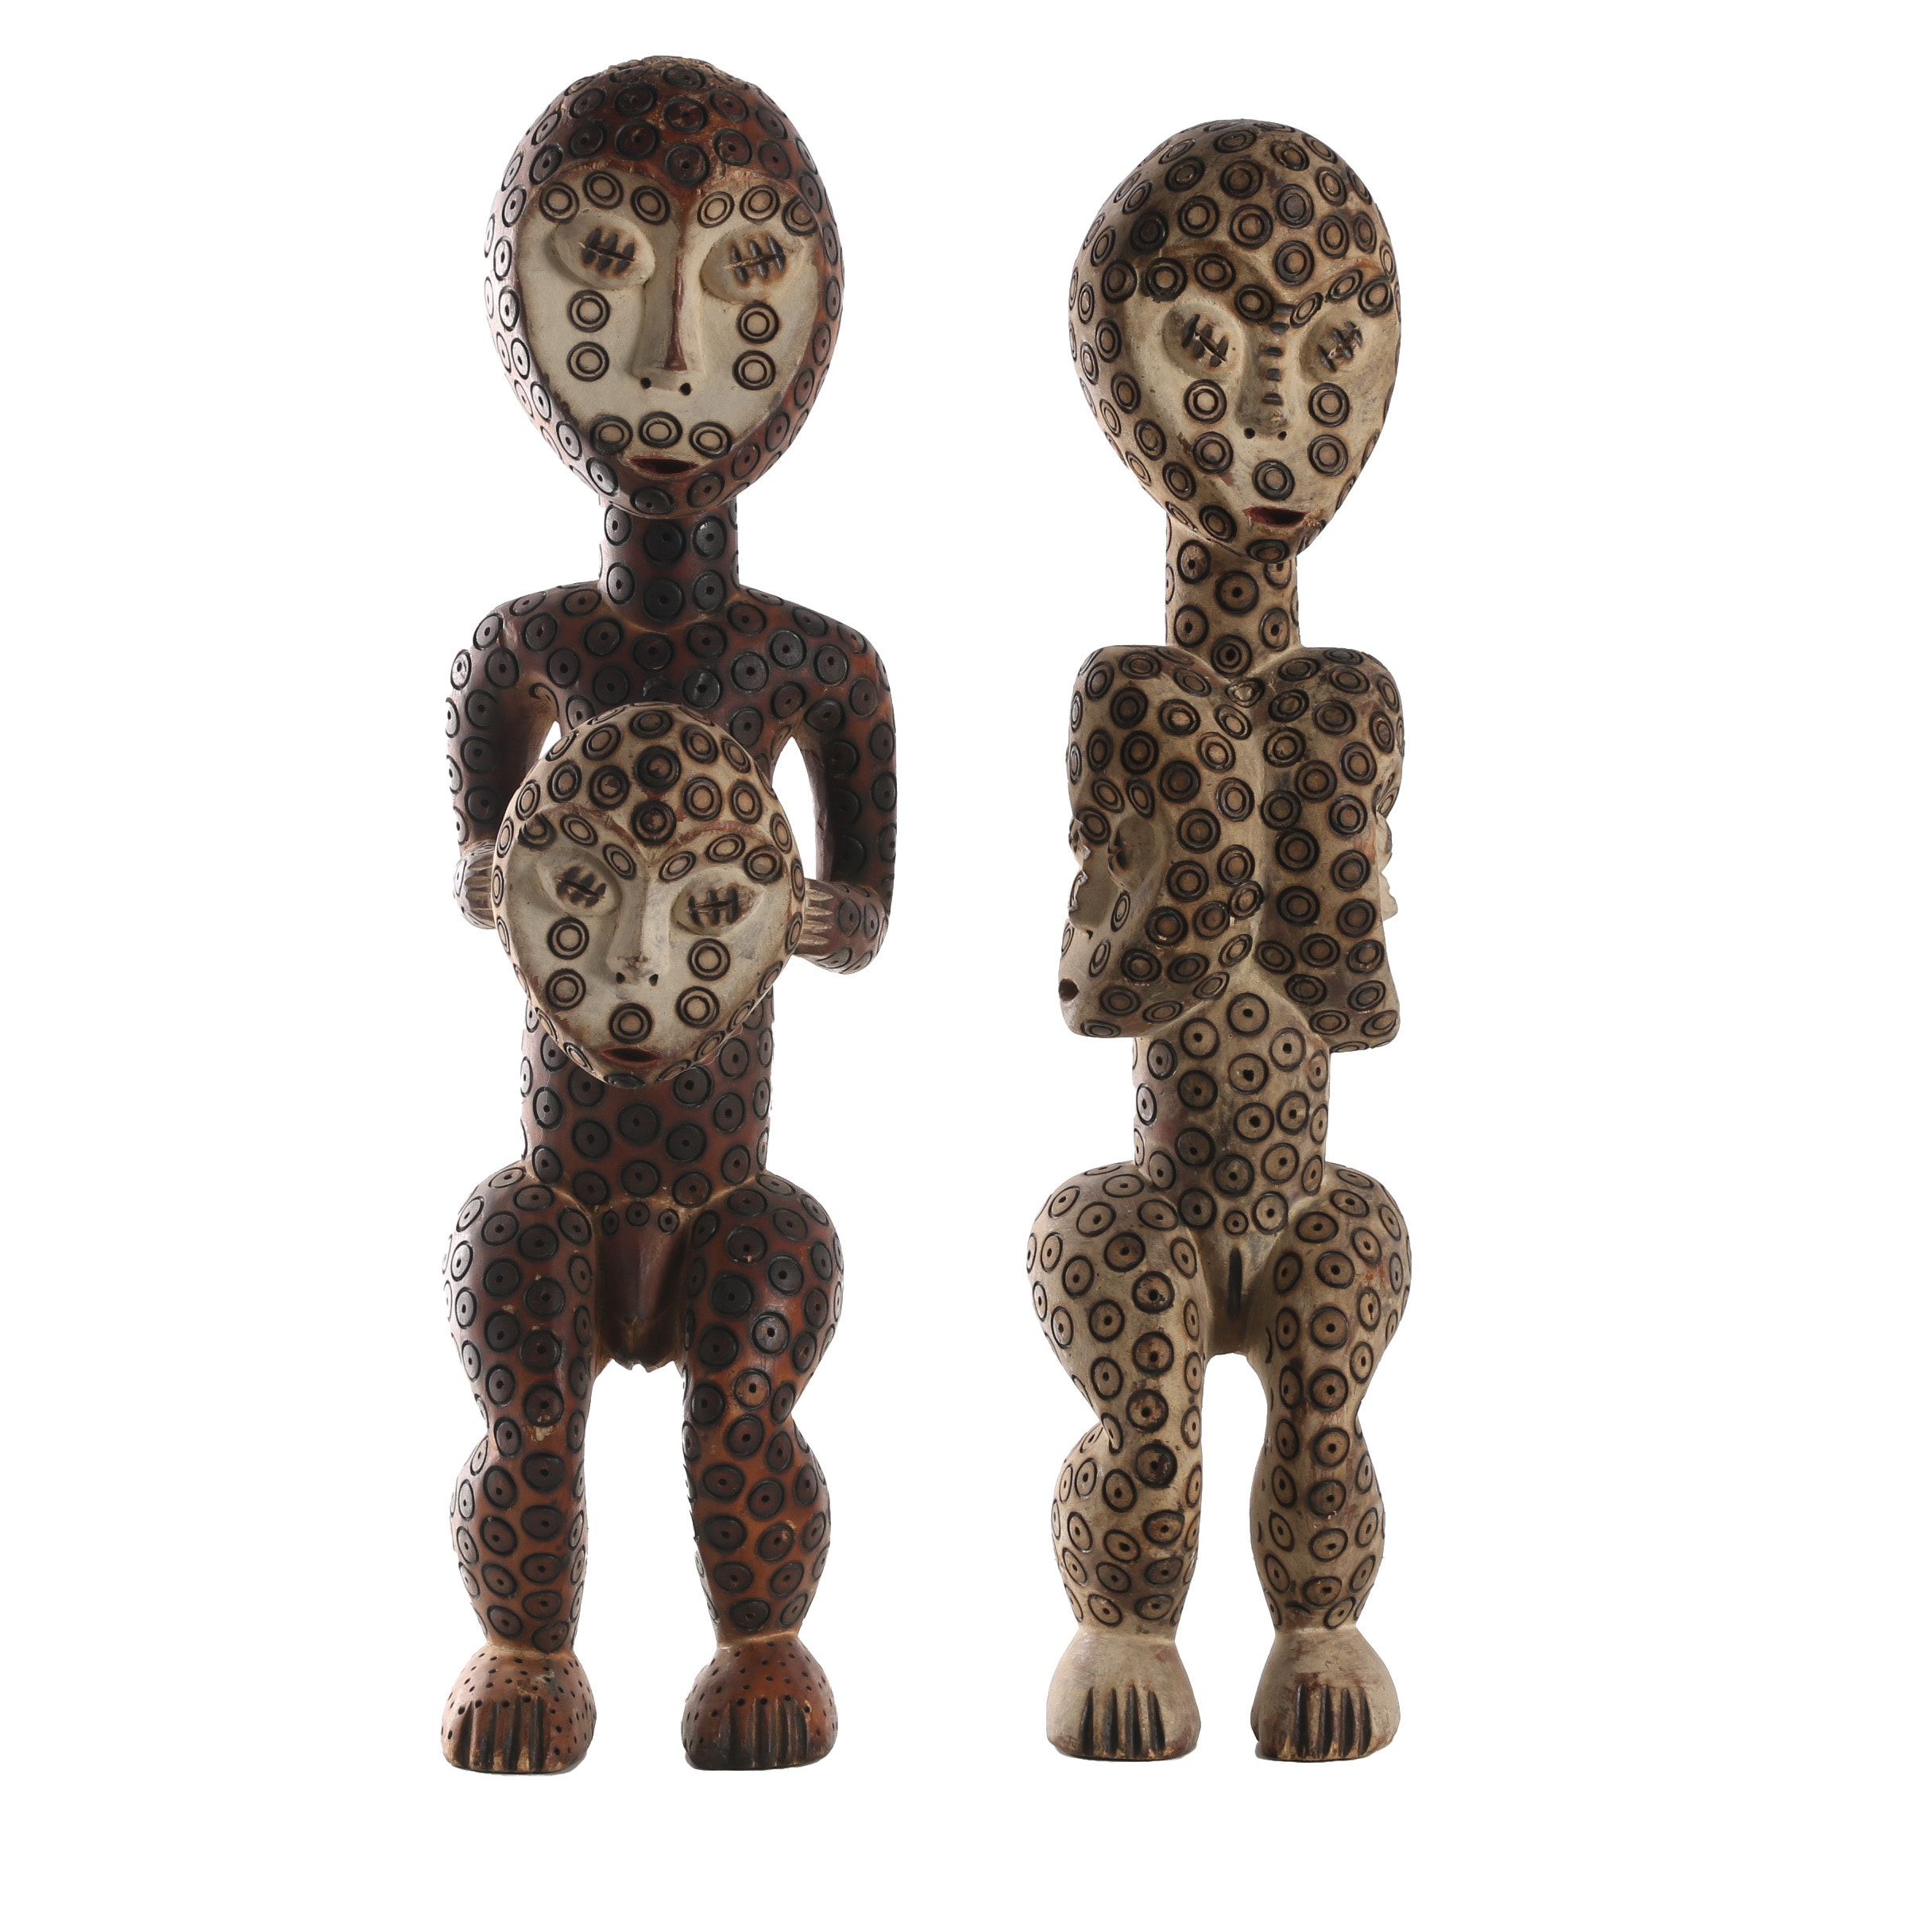 20th Century Carved Wooden Lega Sculptures